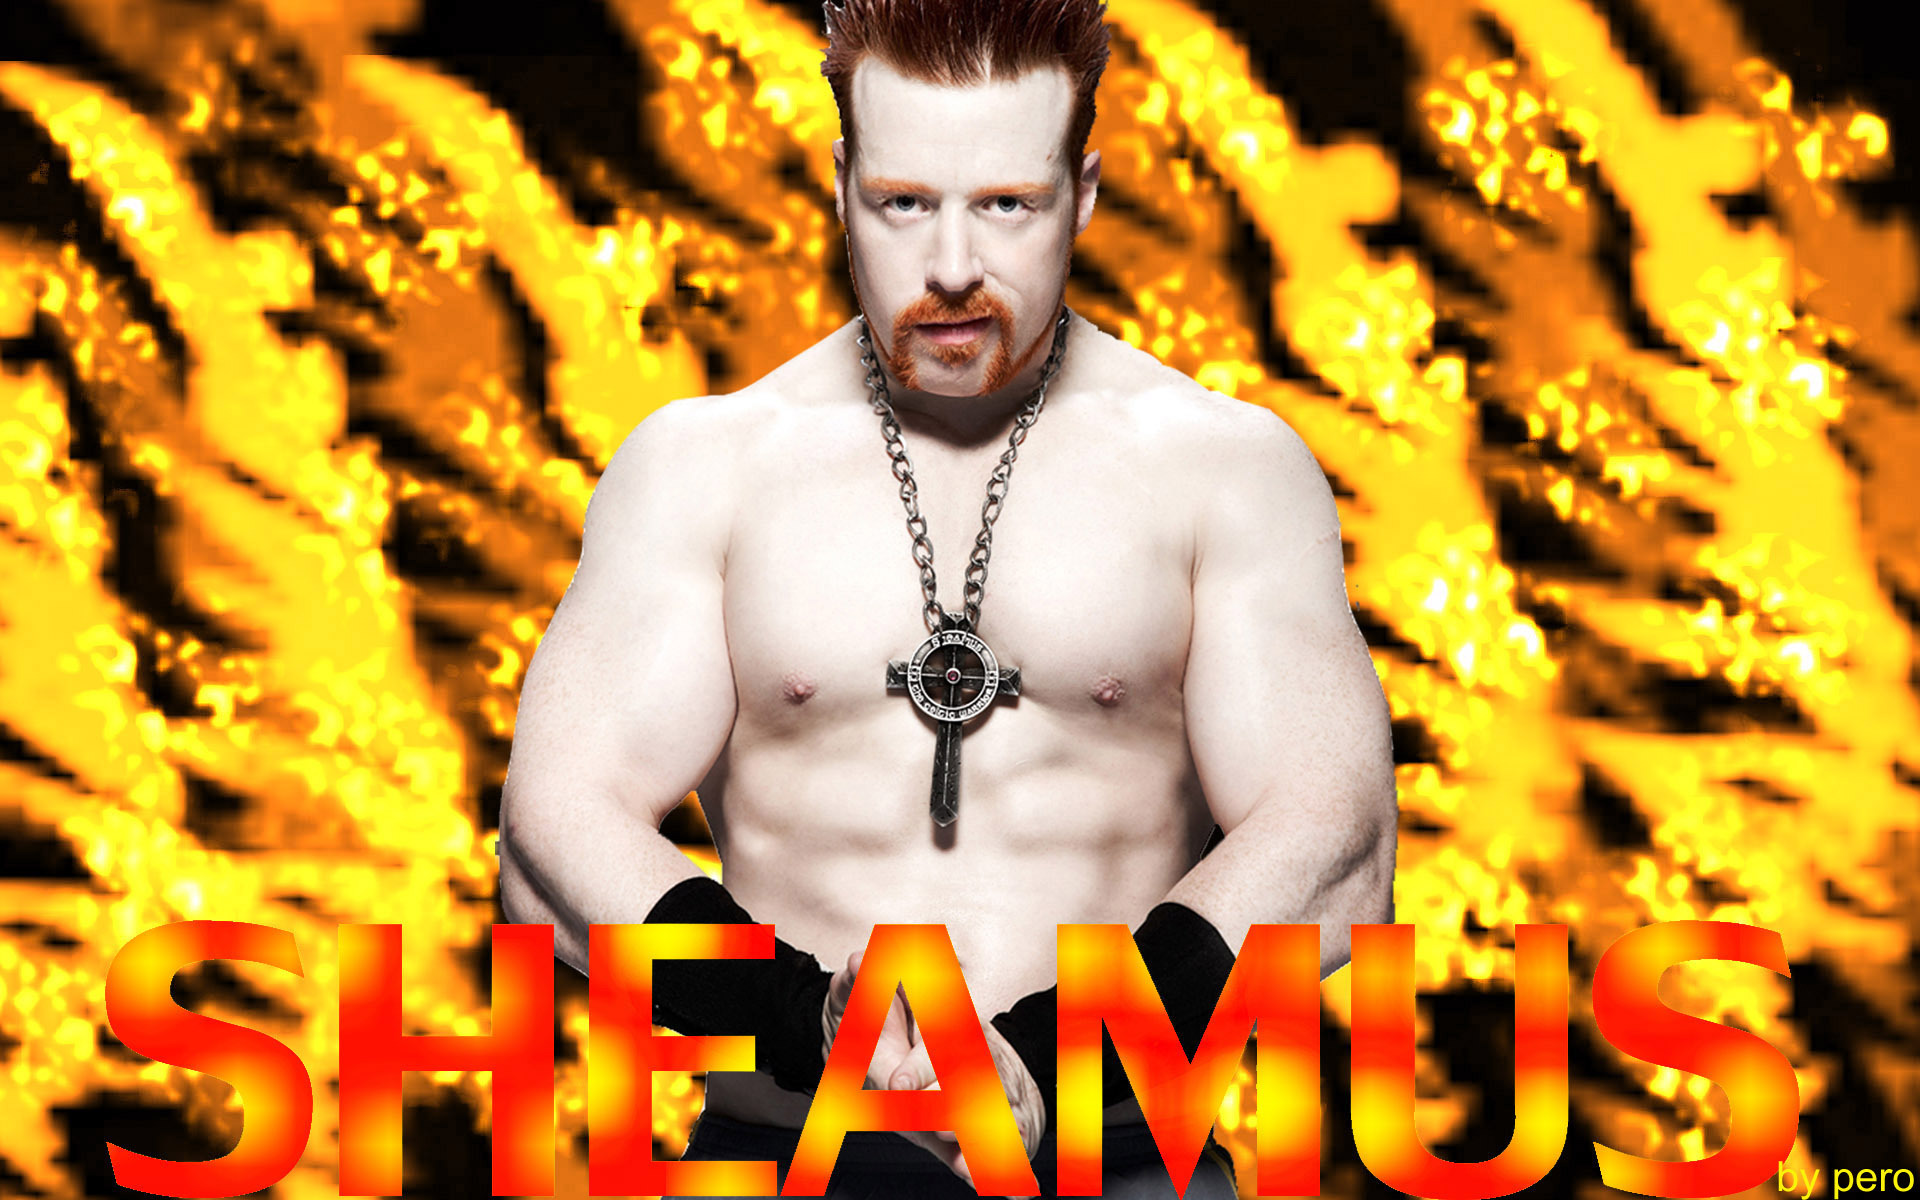 http://images4.fanpop.com/image/photos/20500000/sheamus-sheamus-20516671-1920-1200.jpg